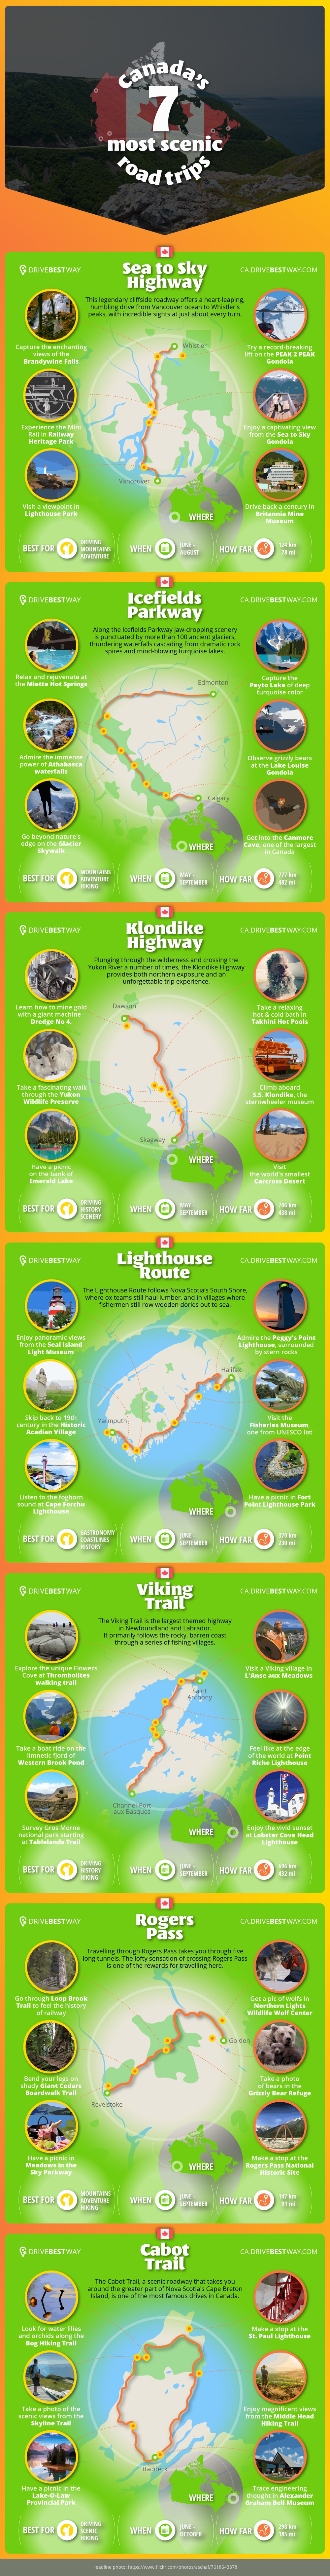 Spellbinding, Spectacular and Stunningly Beautiful: 7 Scenic Road Trips in Canada - Infographic